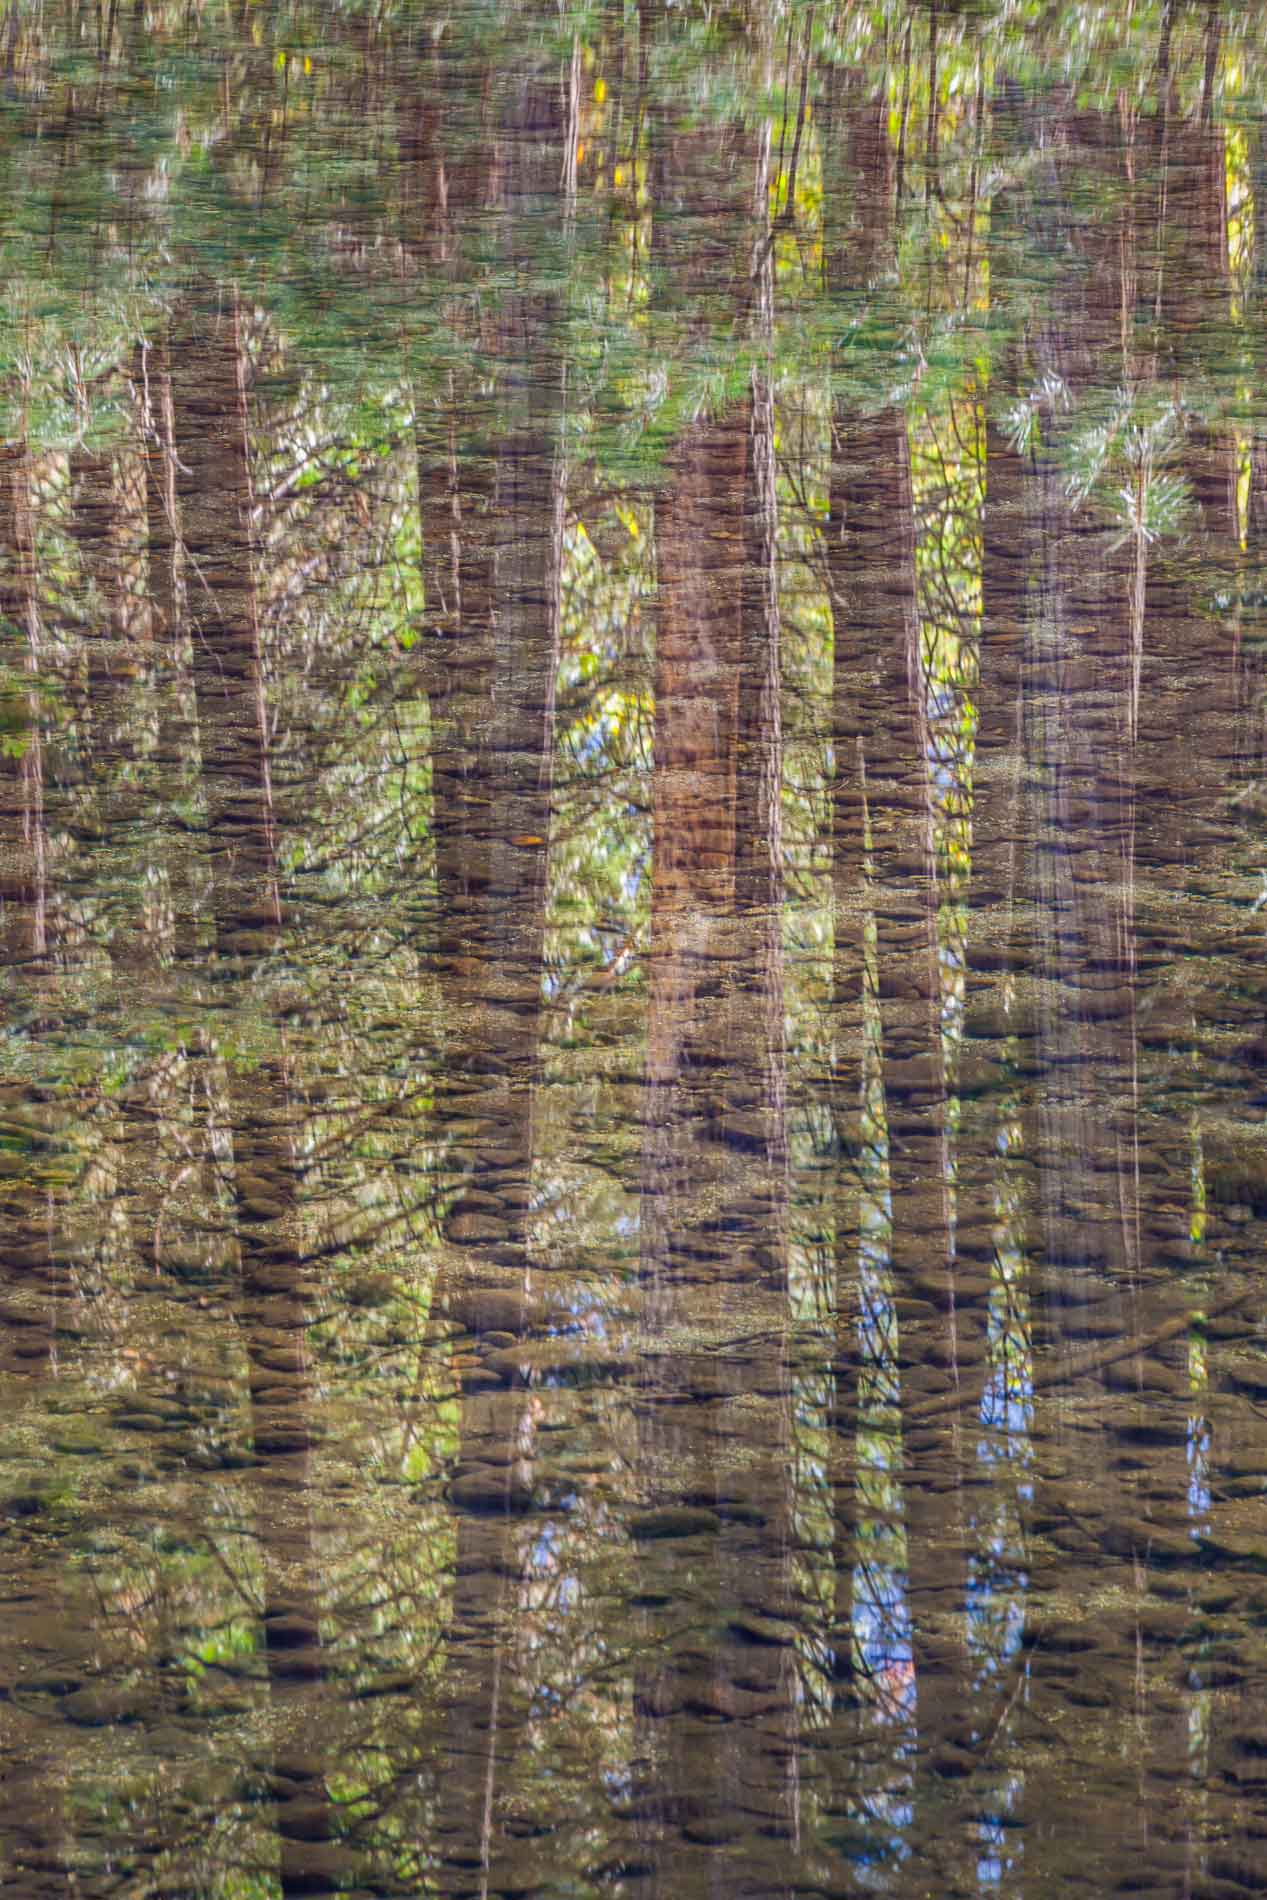 Gibb_pines_reflected_in_the_mercedLR.jpg